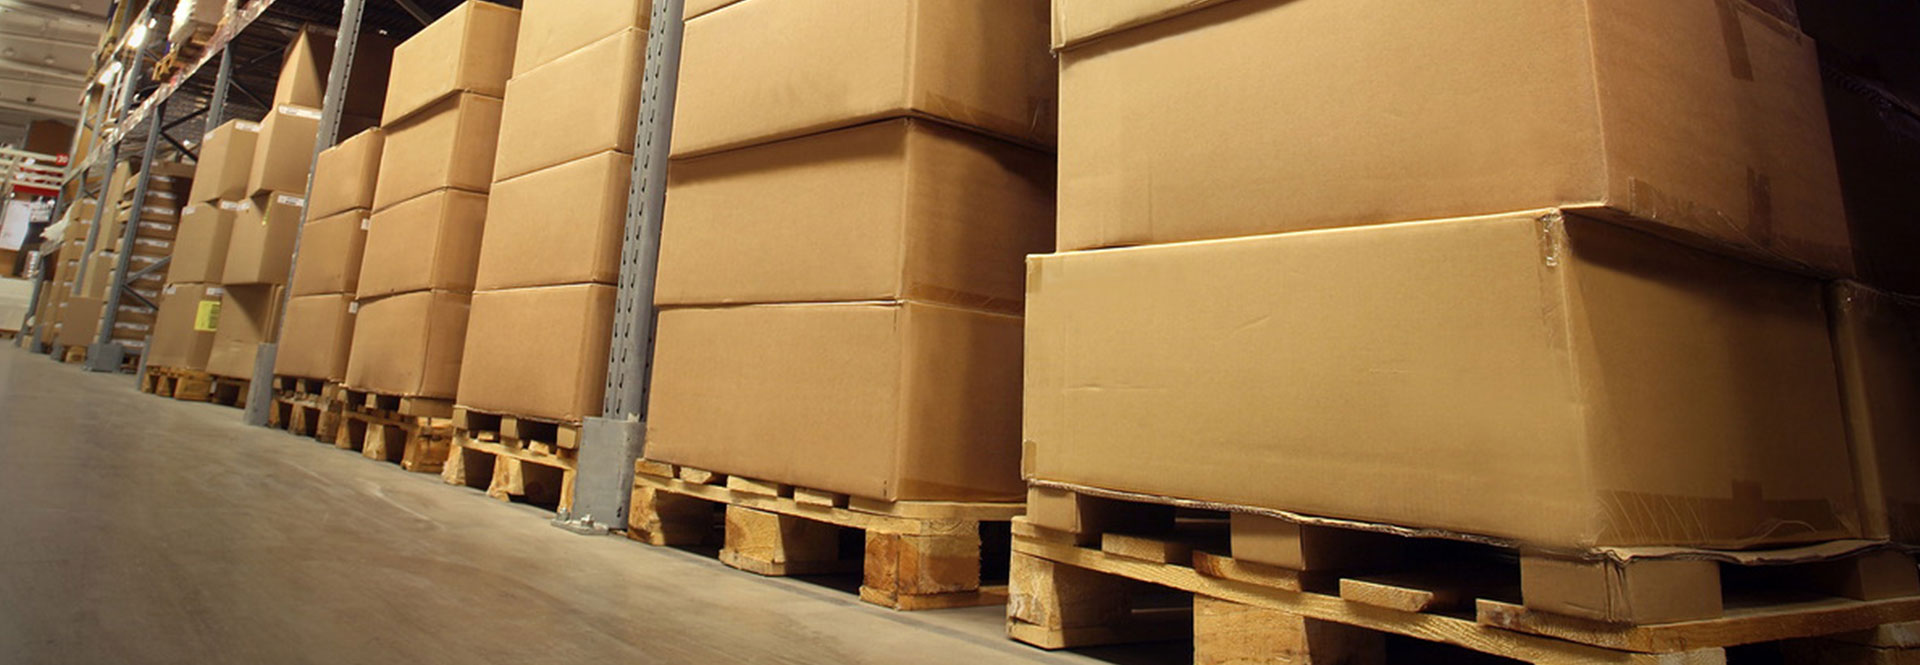 Pallet Racking Helps to Improve Storehouse Storage Area